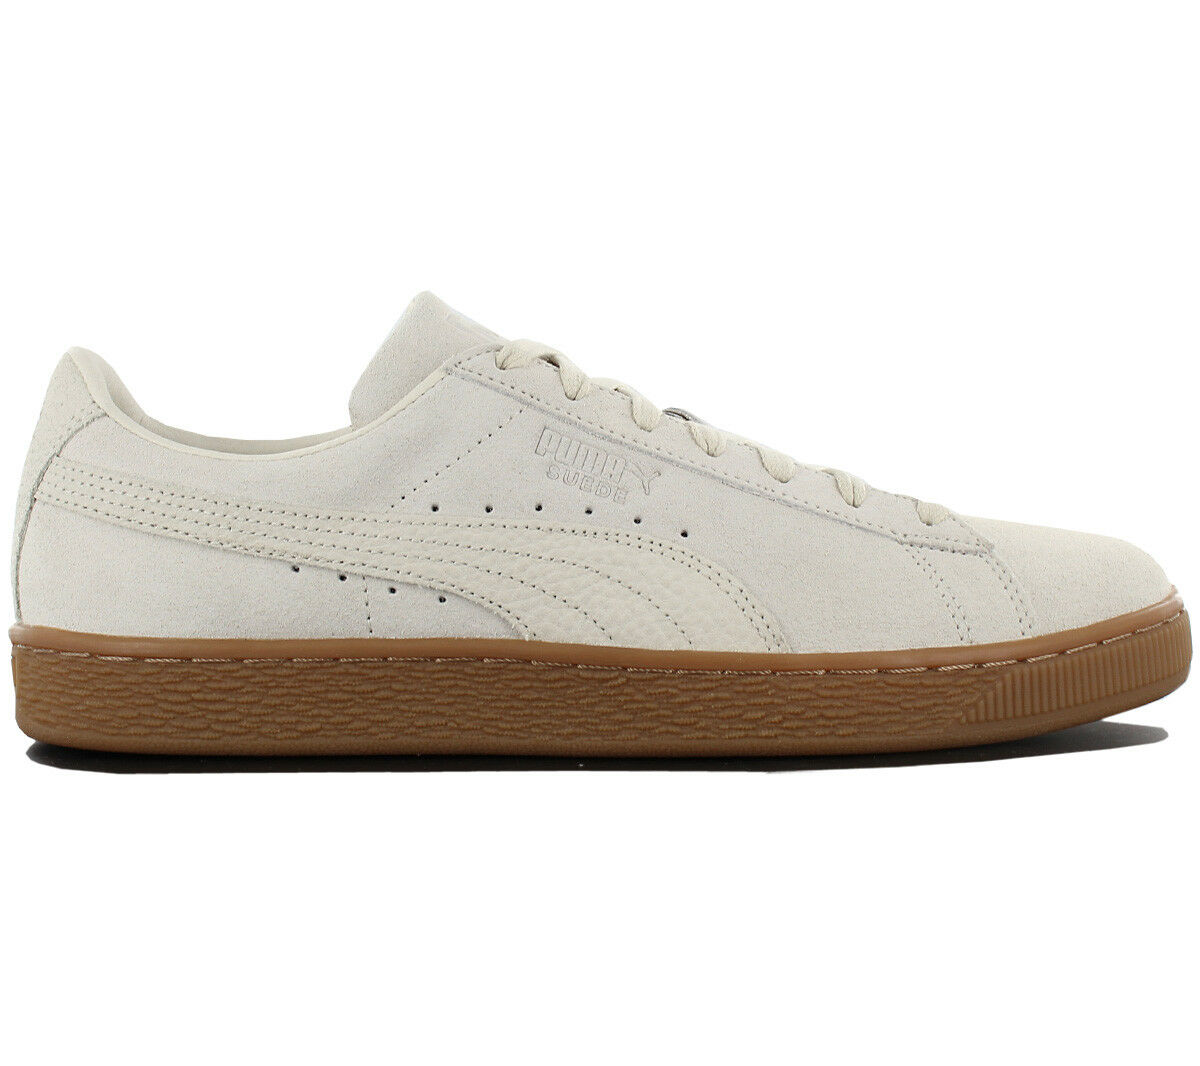 Puma Suede Classic Natural Warmth baskets Chaussures en cuir hommes femmes 363869-02